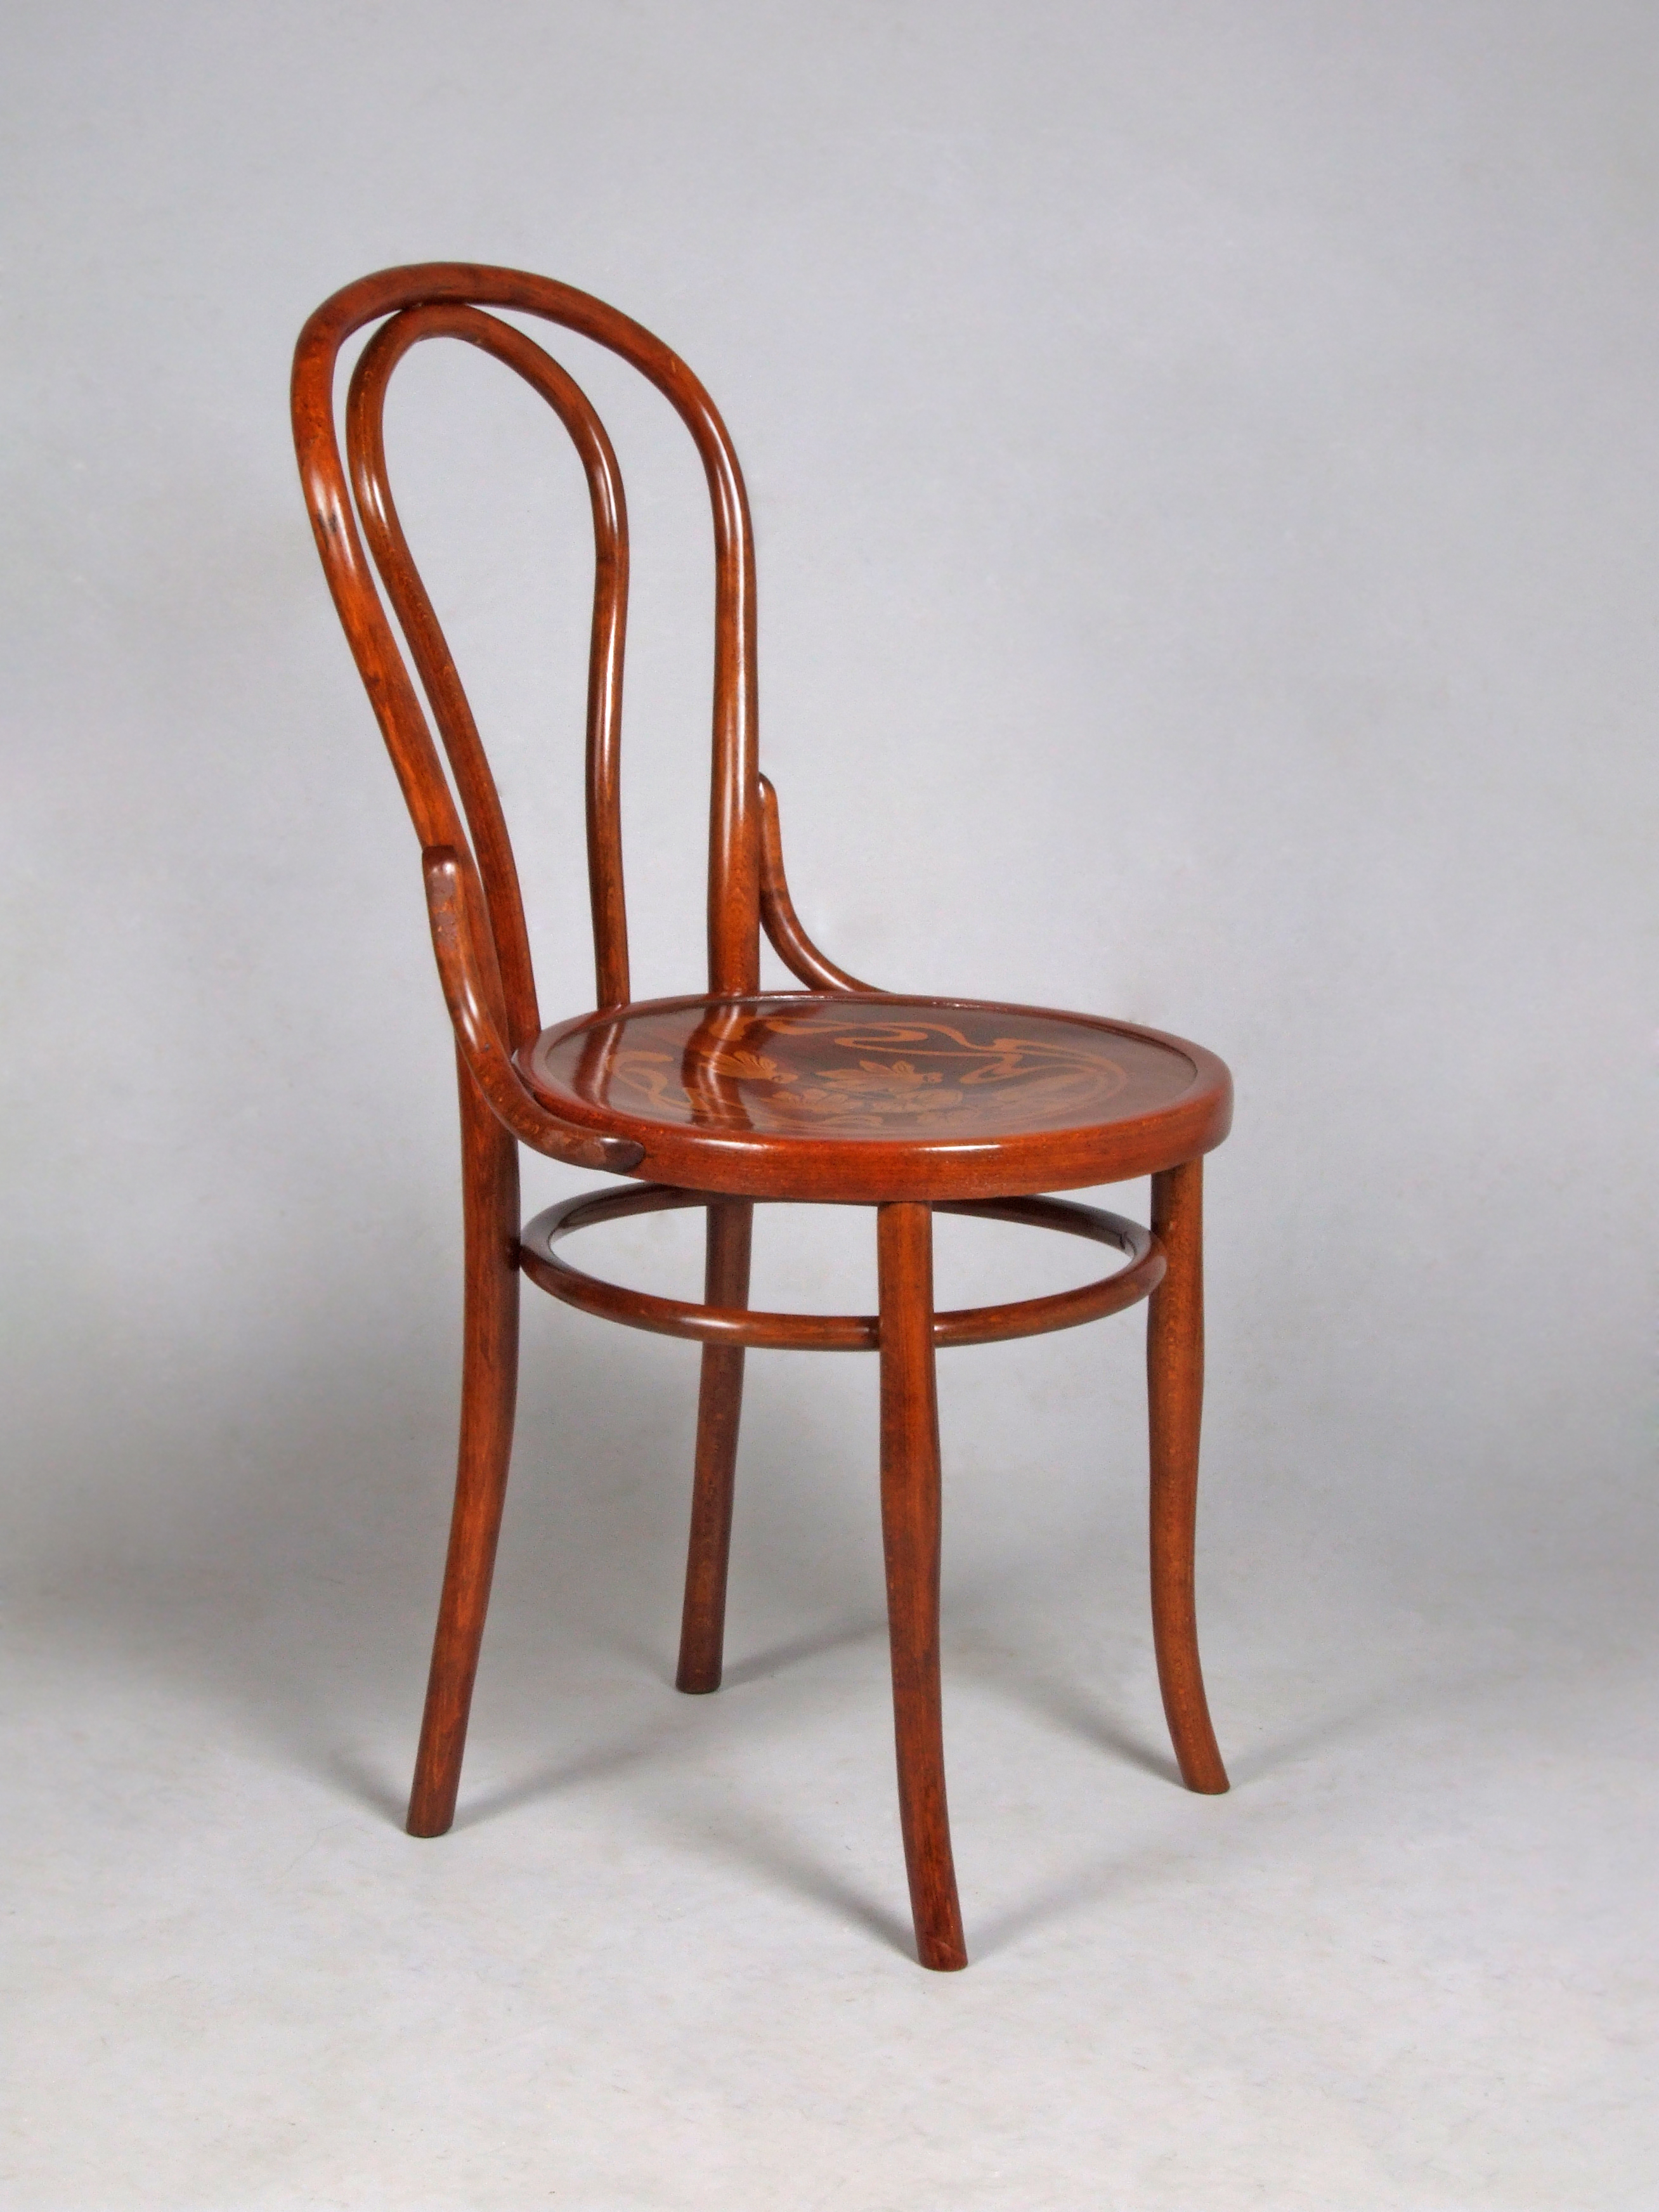 File Thonet chair no 18 Wikimedia mons